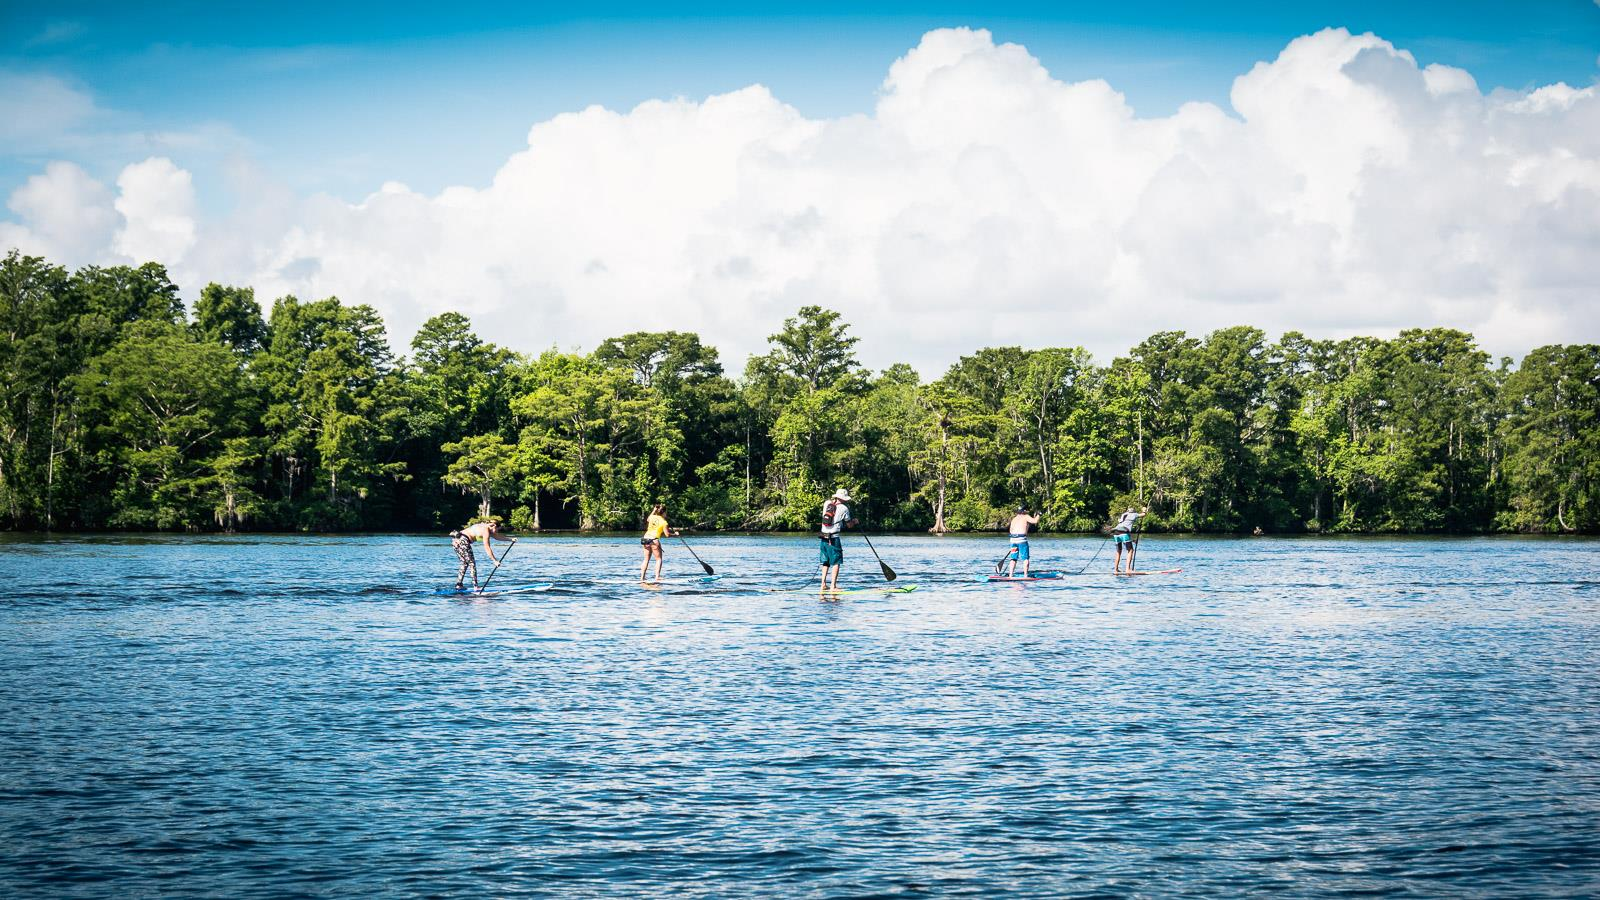 Paddleboarding in Edenton Bay